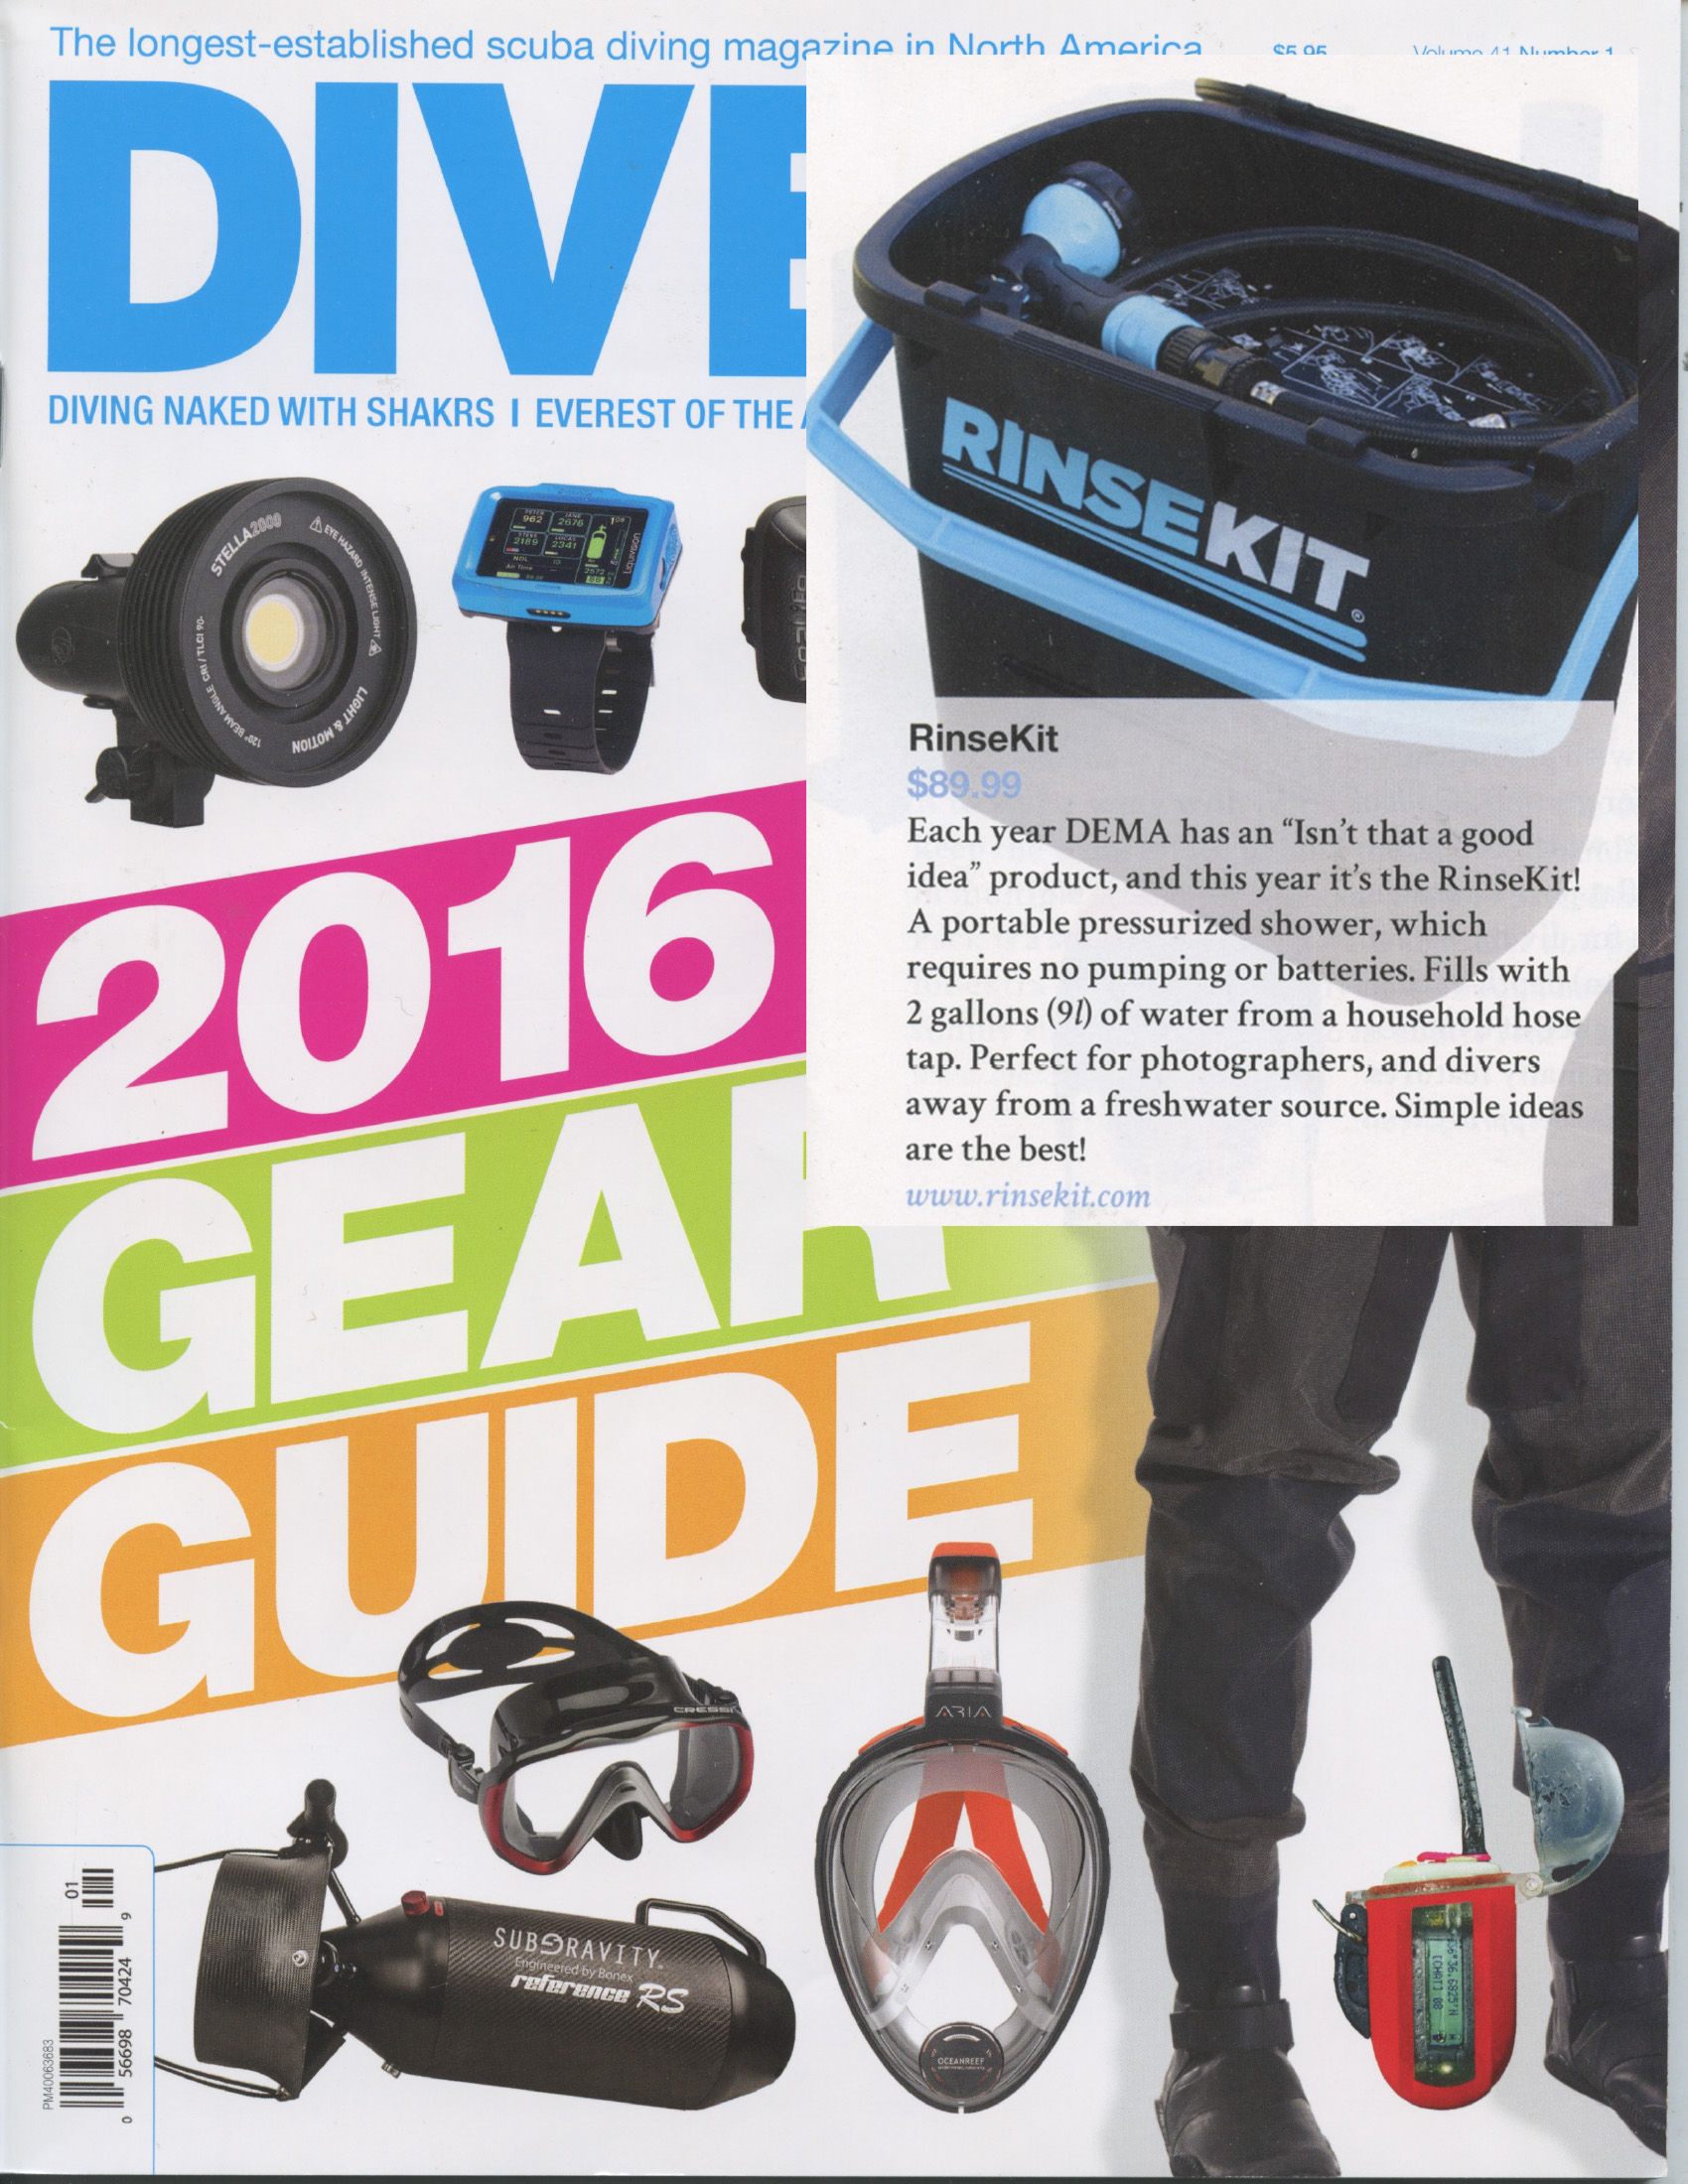 3.15.DiverMag.RinseKit.Feature